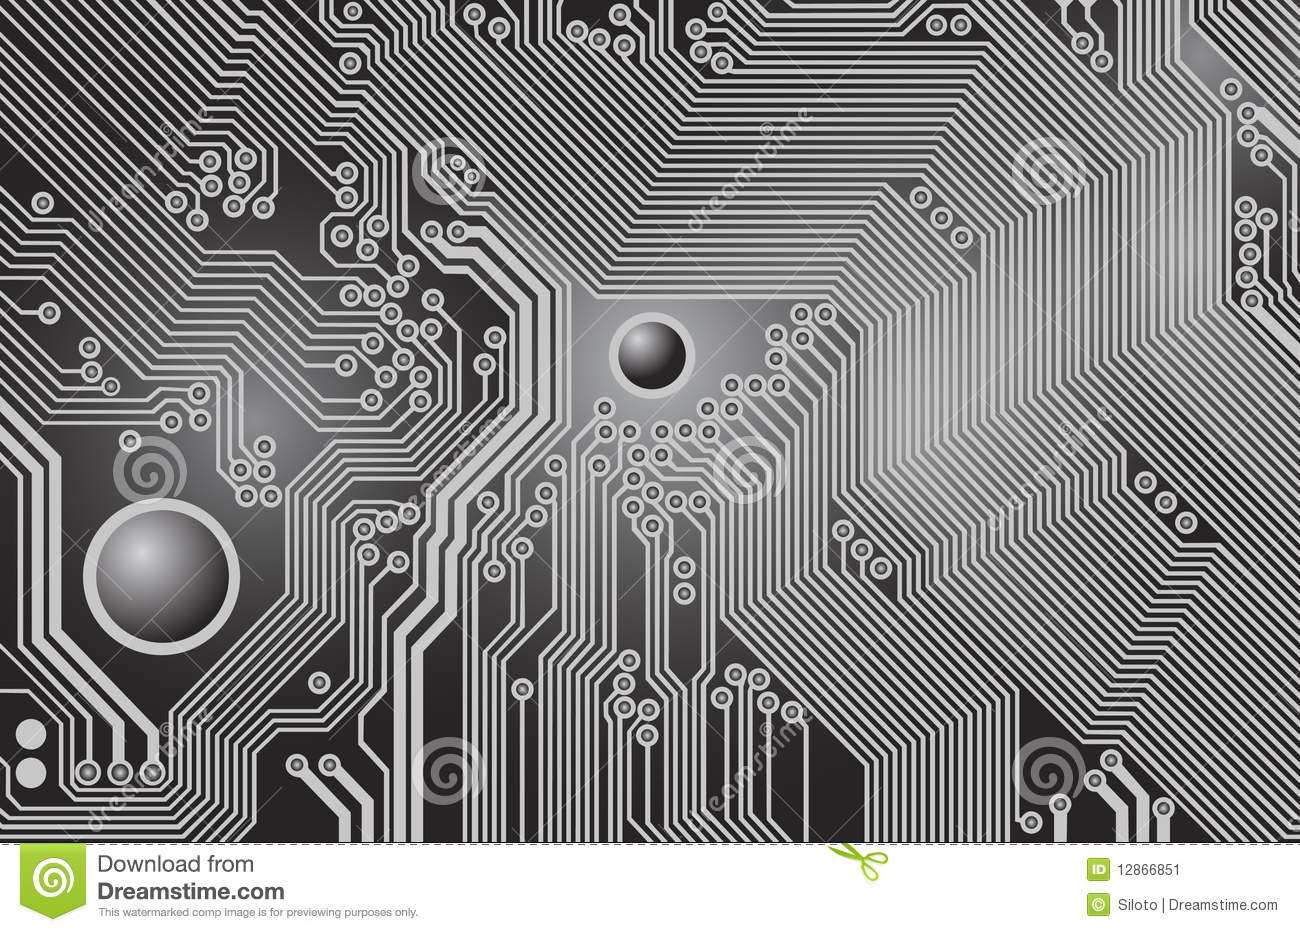 Printed Circuit - Motherboard Stock Vector - Illustration of ...